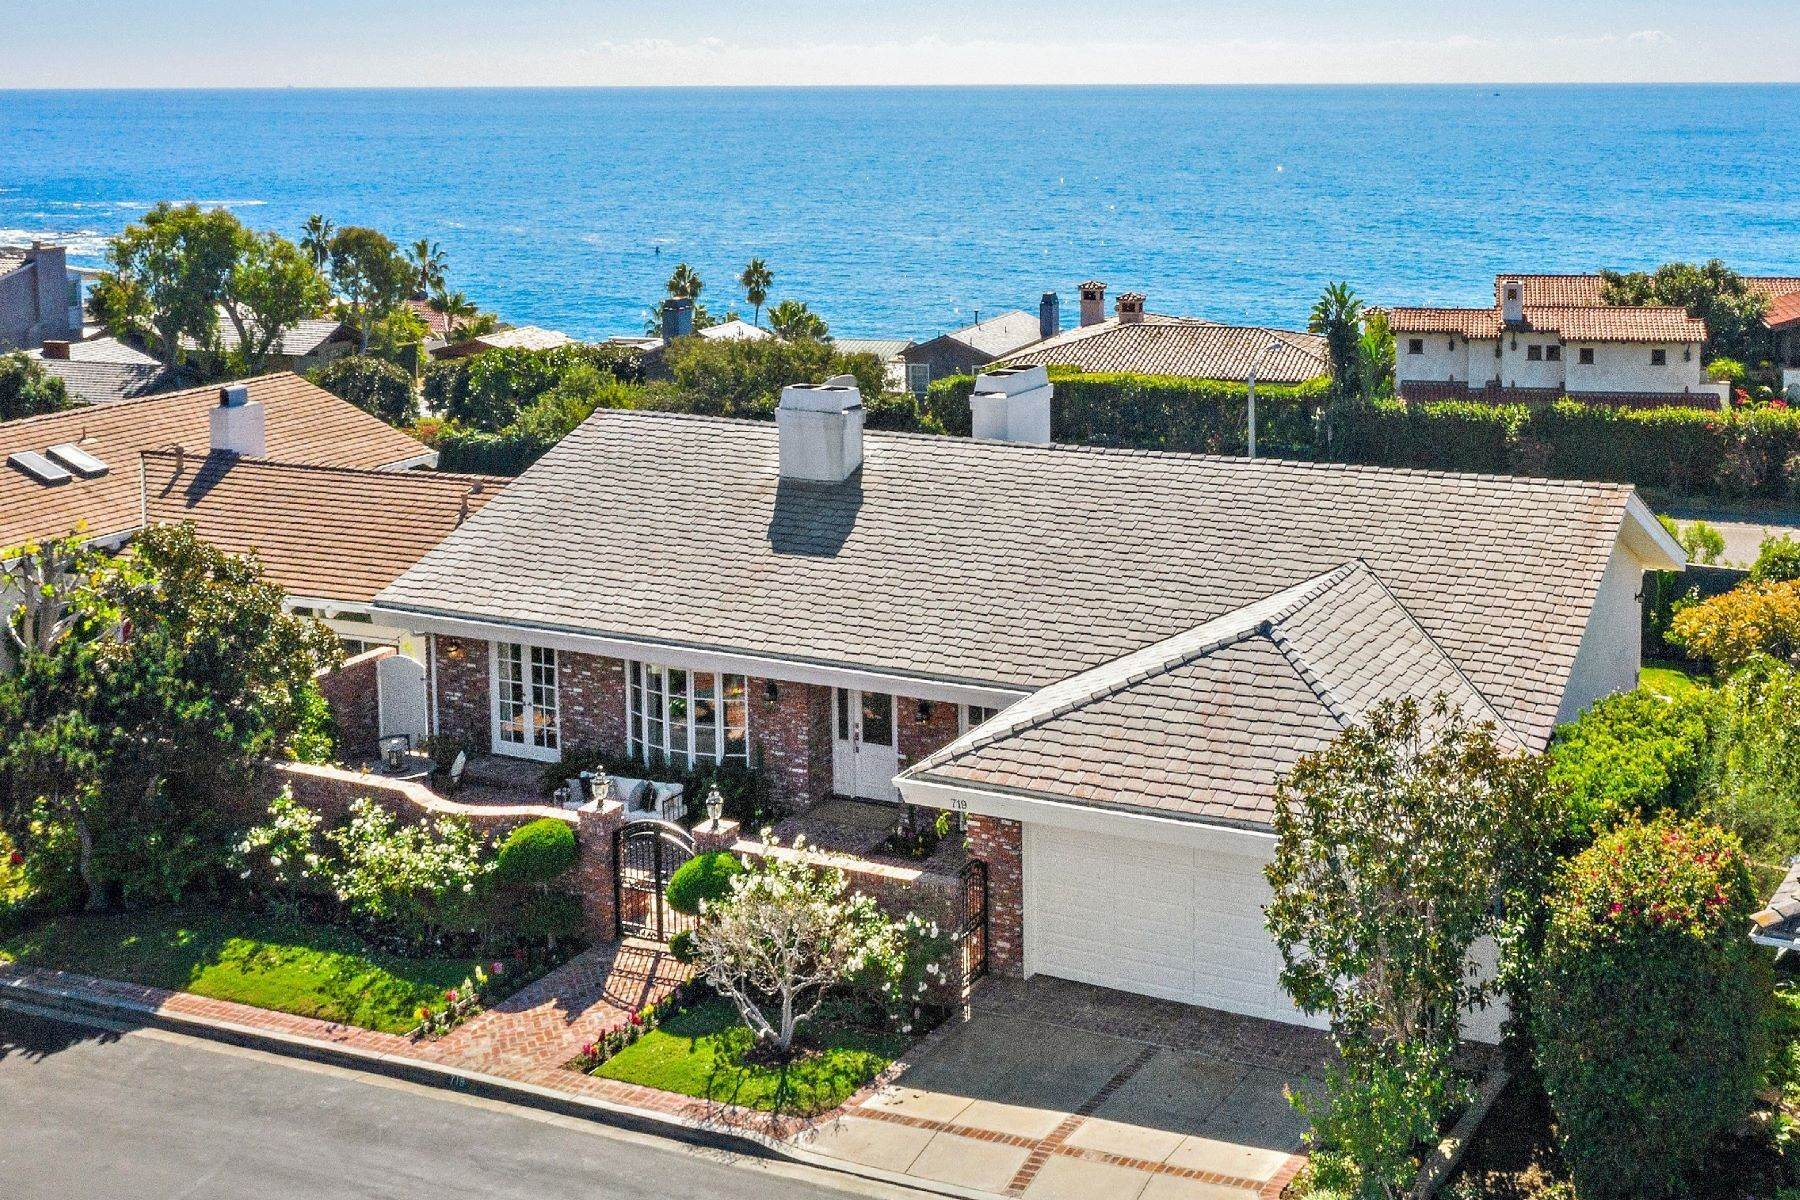 Single Family Homes for Sale at 719 Emerald Bay Laguna Beach, California 92651 United States